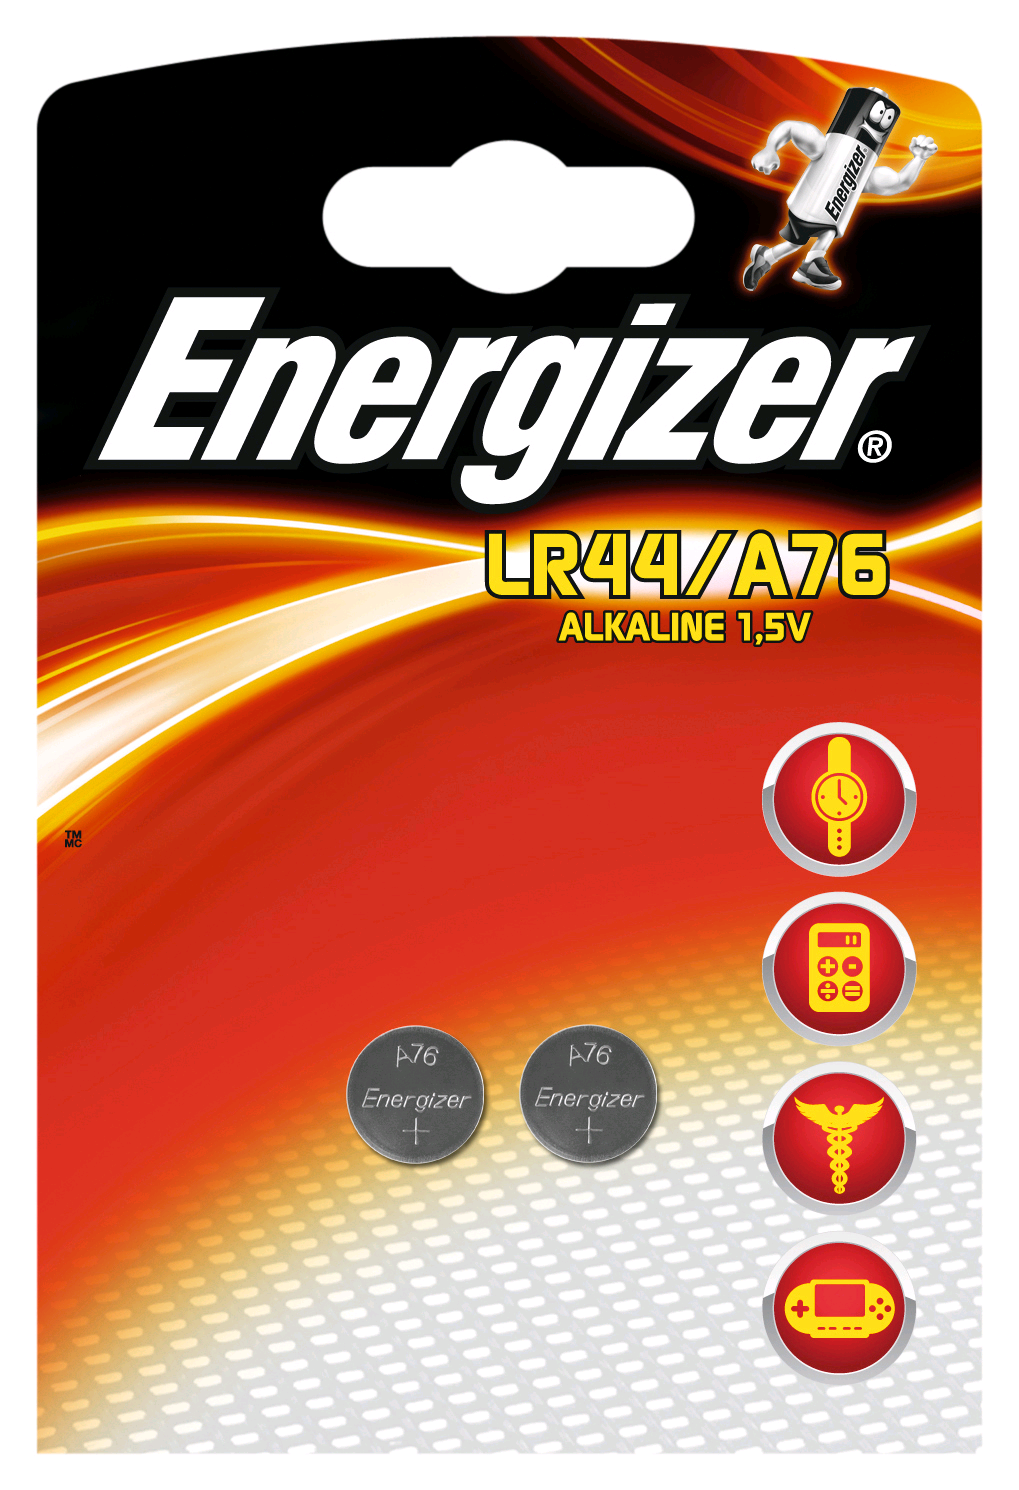 Energizer LR44 1.5V Button Cell Battery Twin Pack